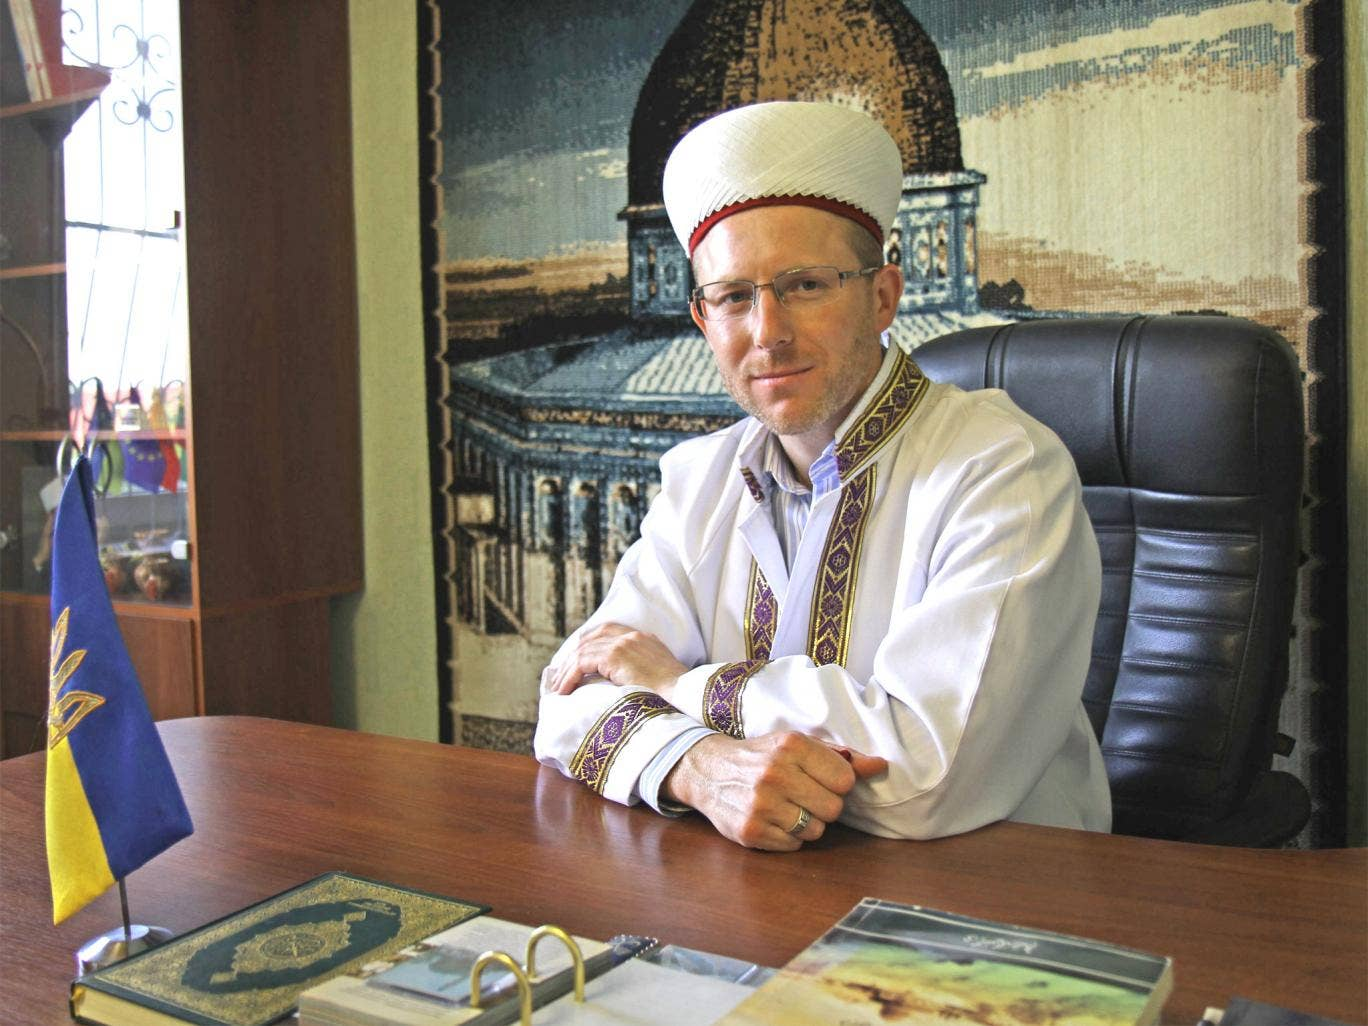 The Tatar, Sheikh Said Ismagilov: 'They are not tolerant to Muslims in Russia because of two Chechen wars. Muslims are associated with terrorists. It is much better here in Ukraine'